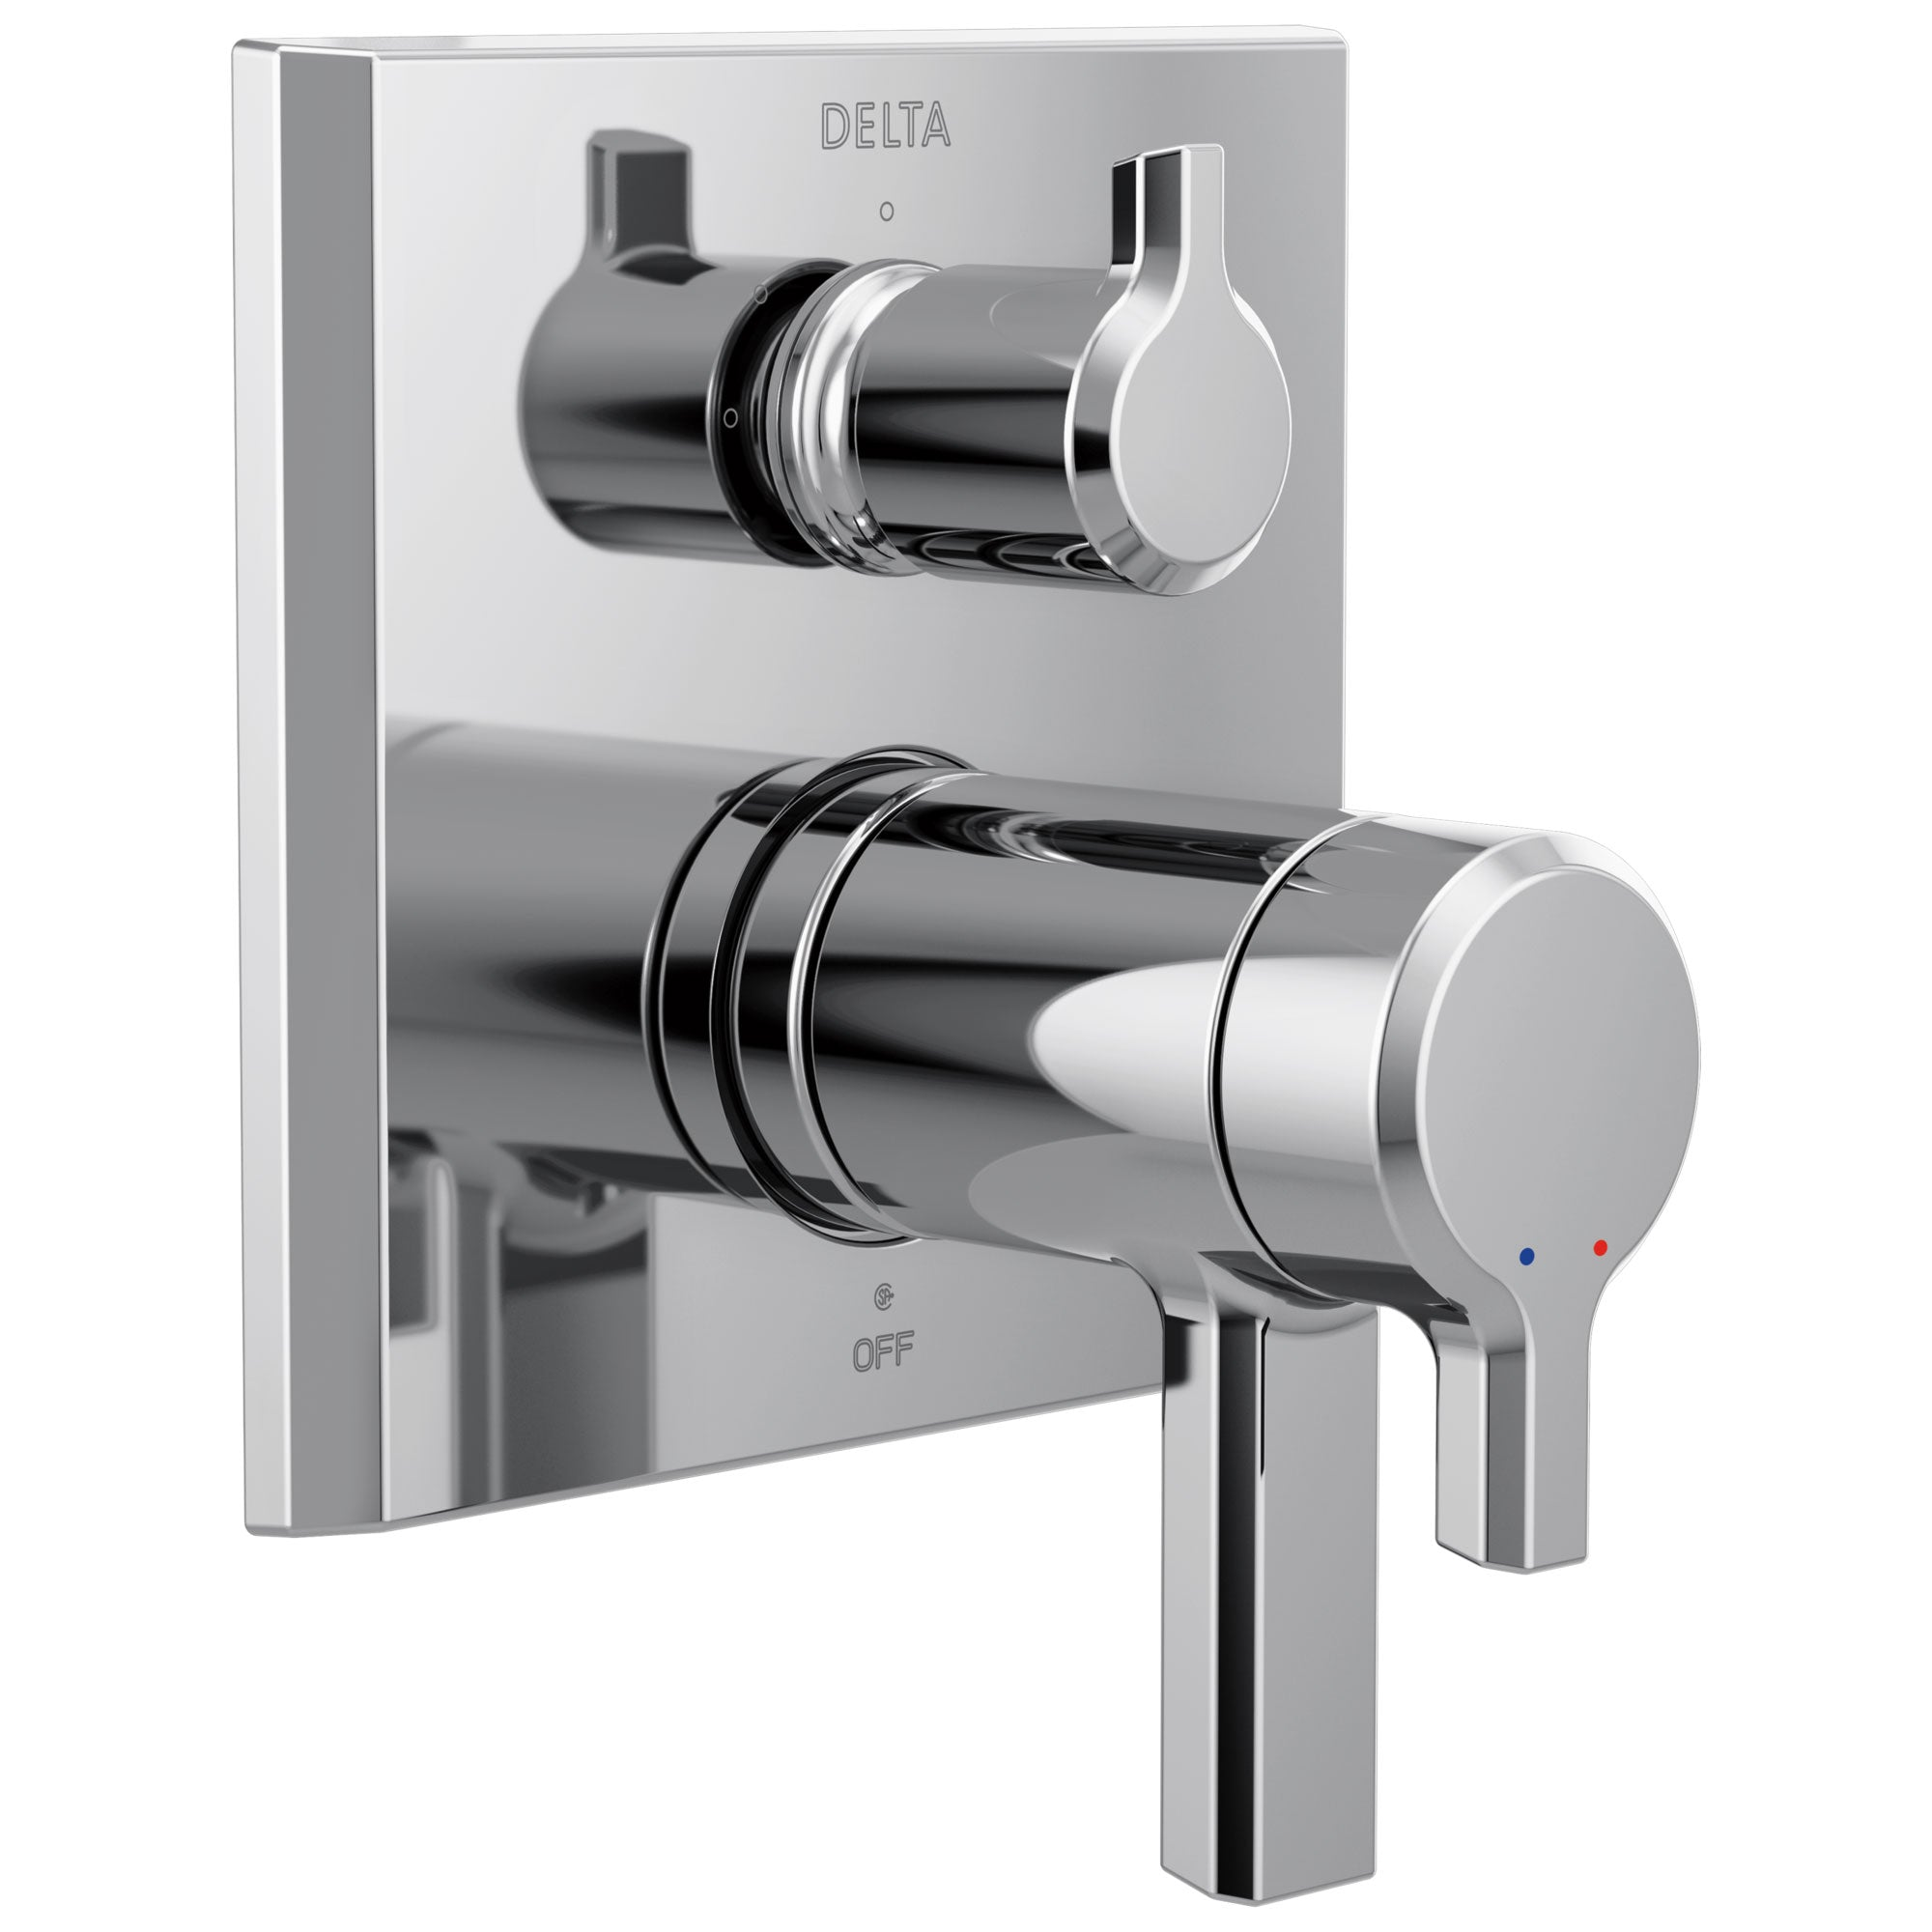 Delta Pivotal Chrome Finish TempAssure 17T Series Shower Control Trim Kit with 3-Setting Integrated Diverter (Requires Valve) DT27T899